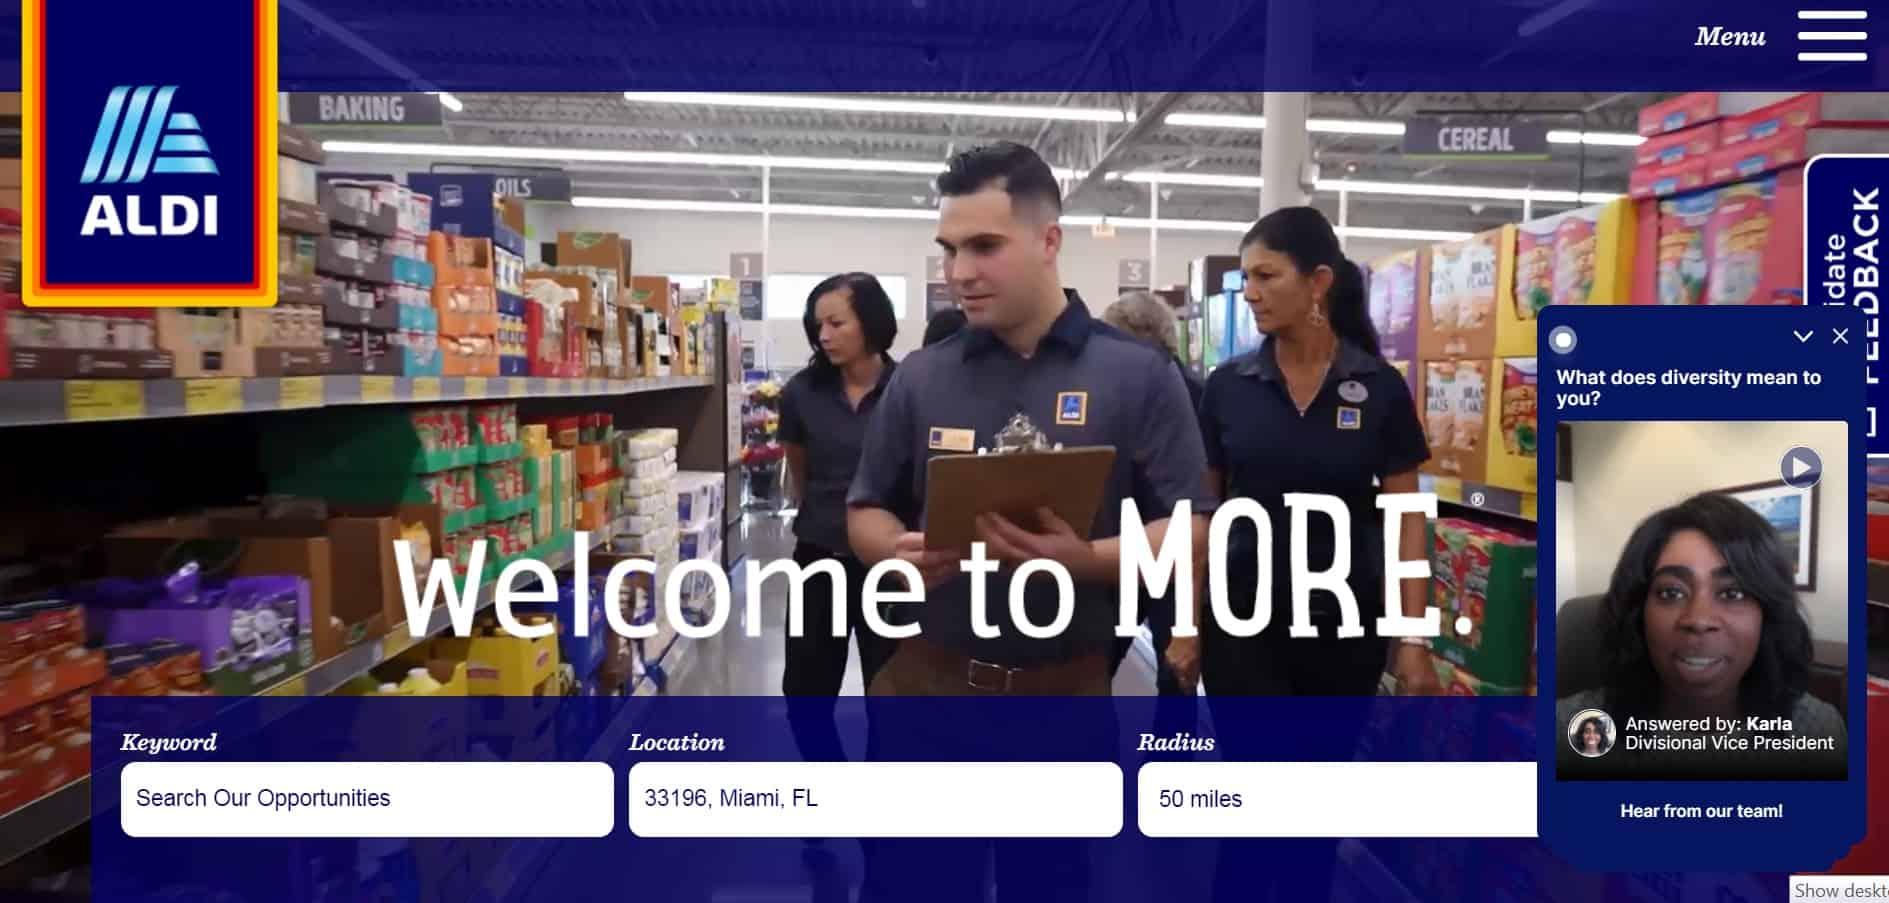 Find one of the Aldi careers that fits your needs by visiting this page.